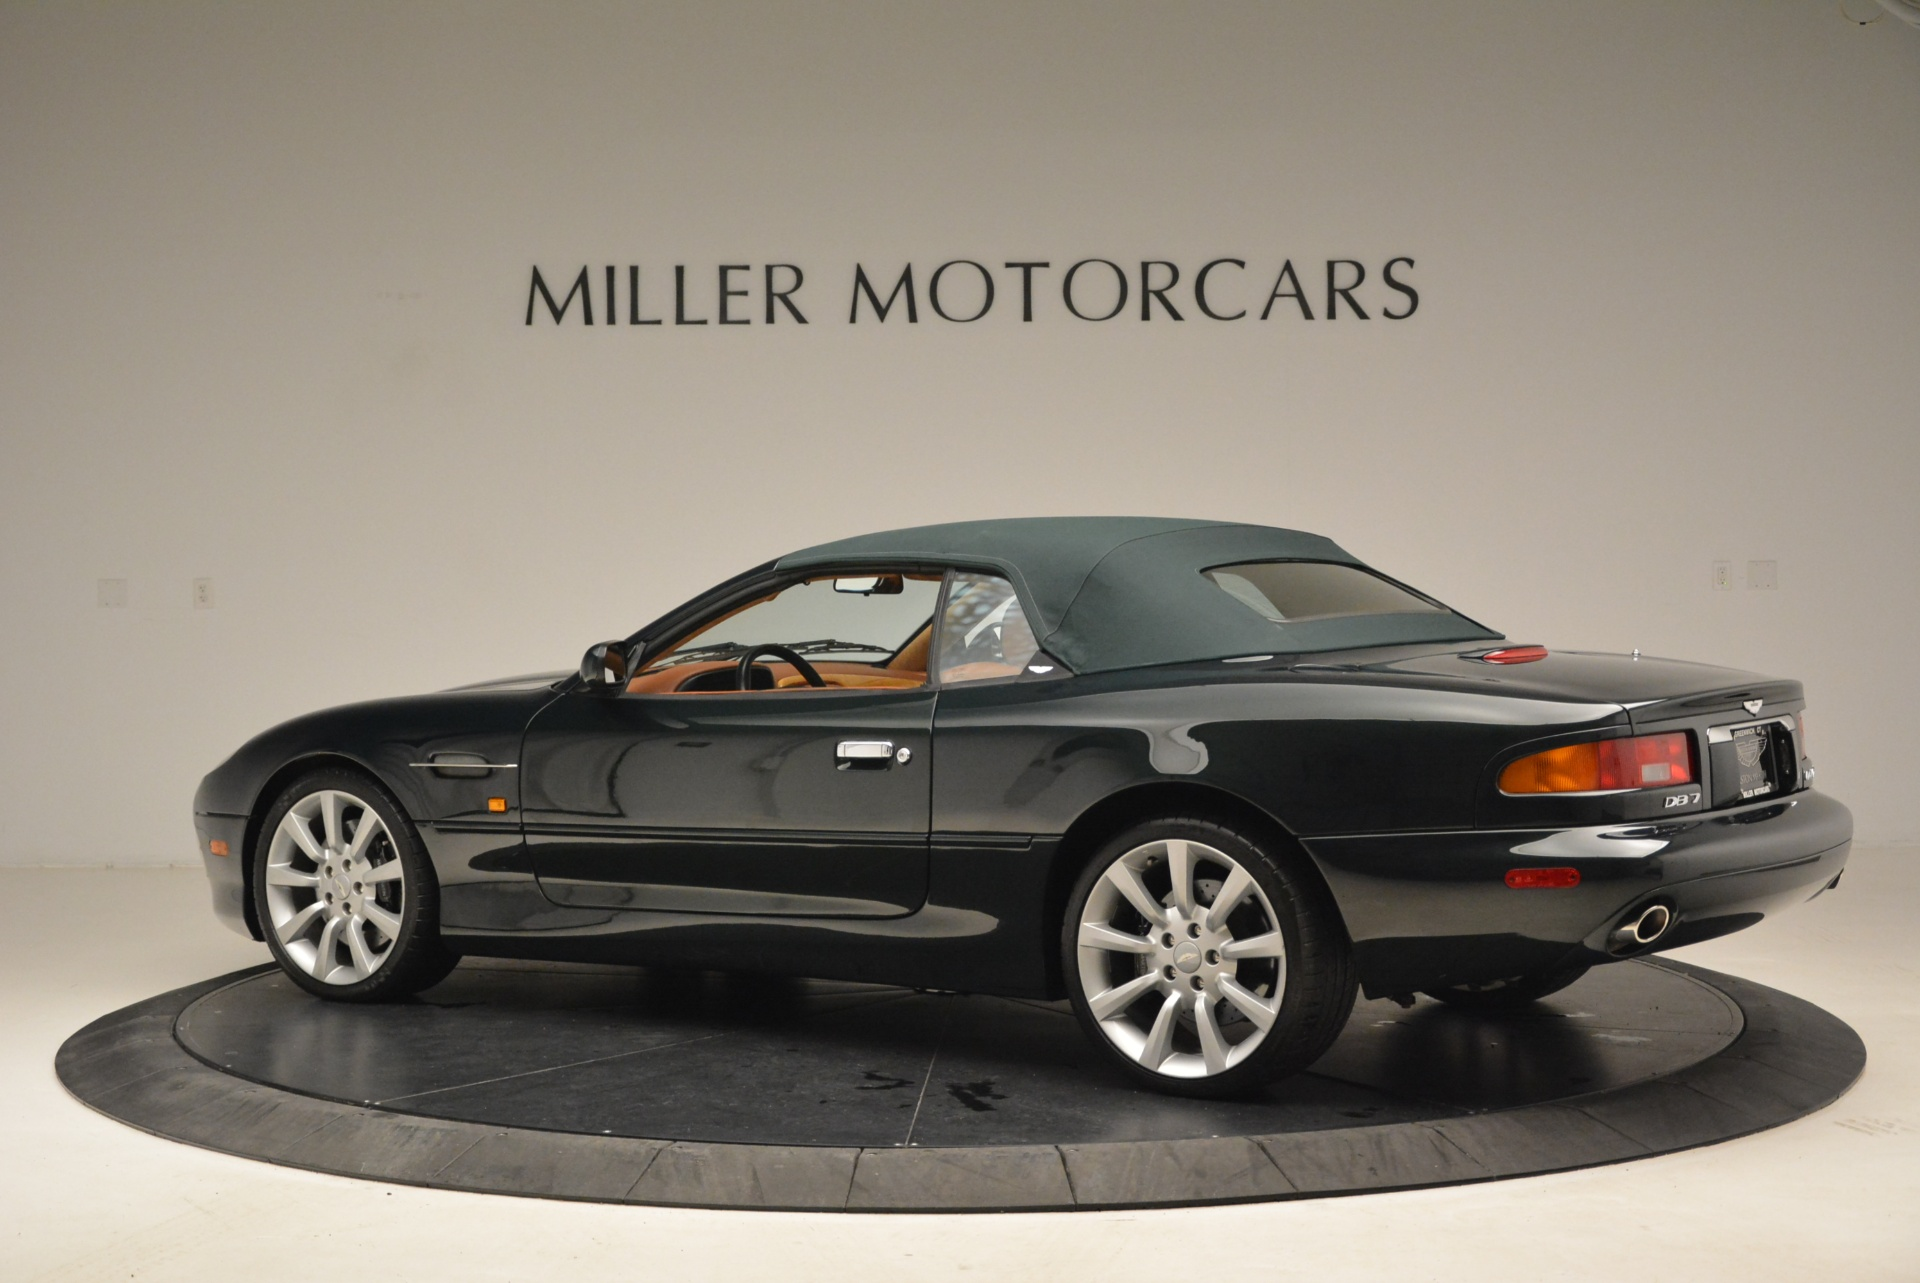 Used 2003 Aston Martin DB7 Vantage Volante For Sale In Westport, CT 2084_p16